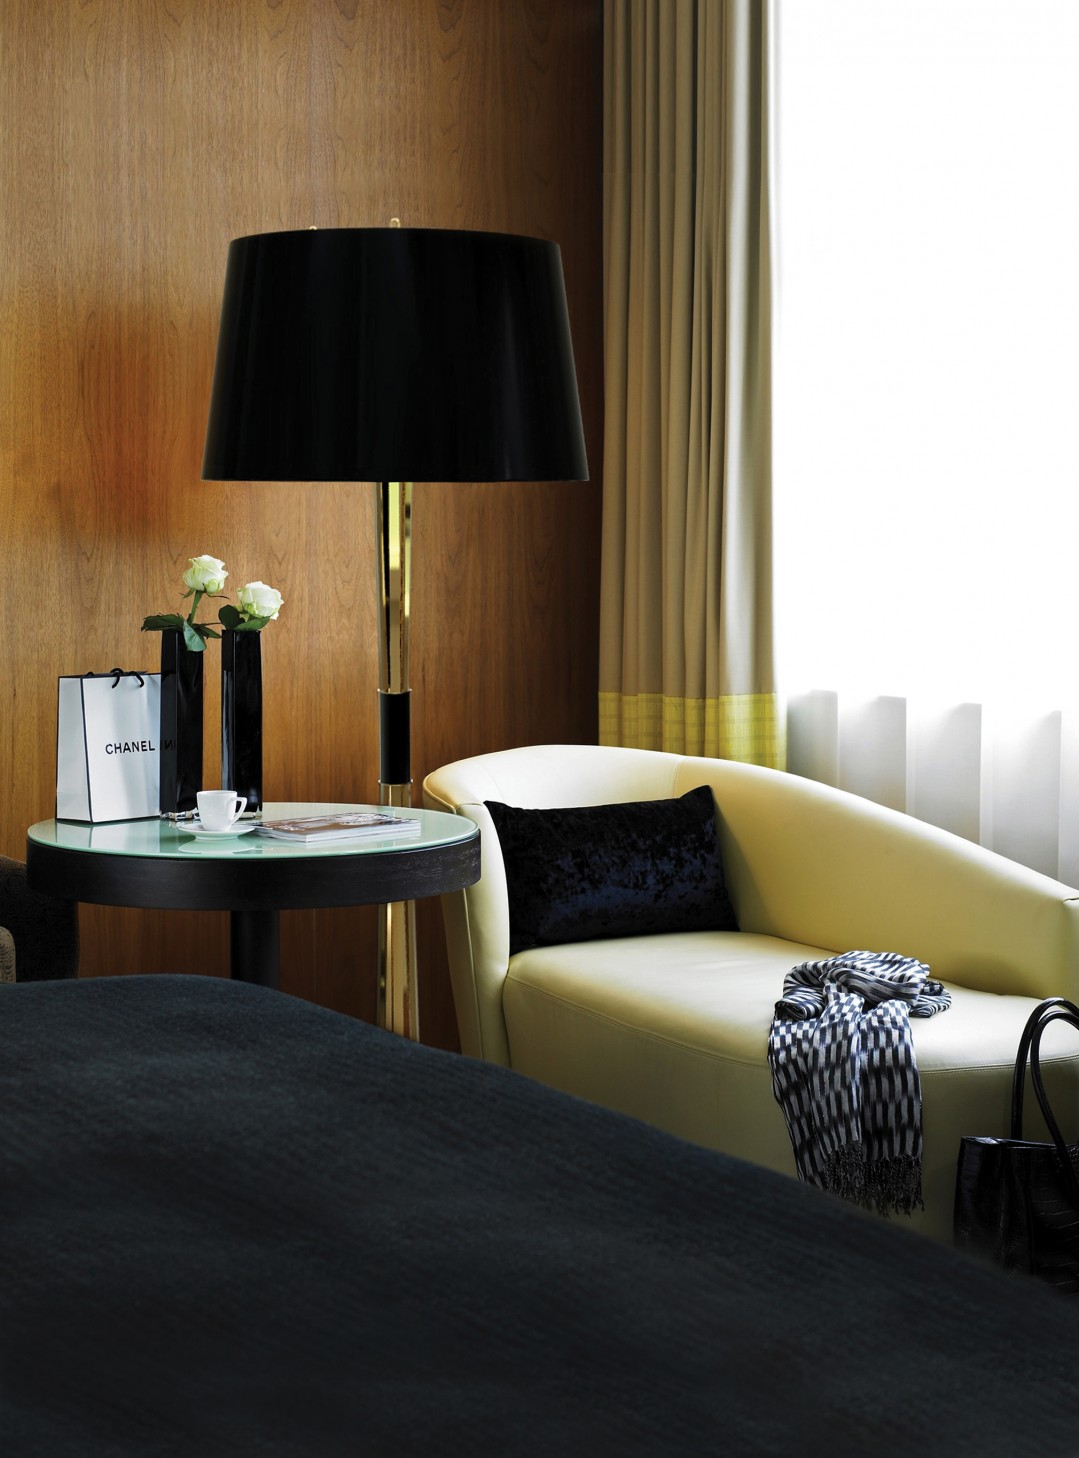 iconic floor lamps Iconic Floor Lamps Presented By Floor Samples! Iconic Floor Lamps Presented By Floor Samples2